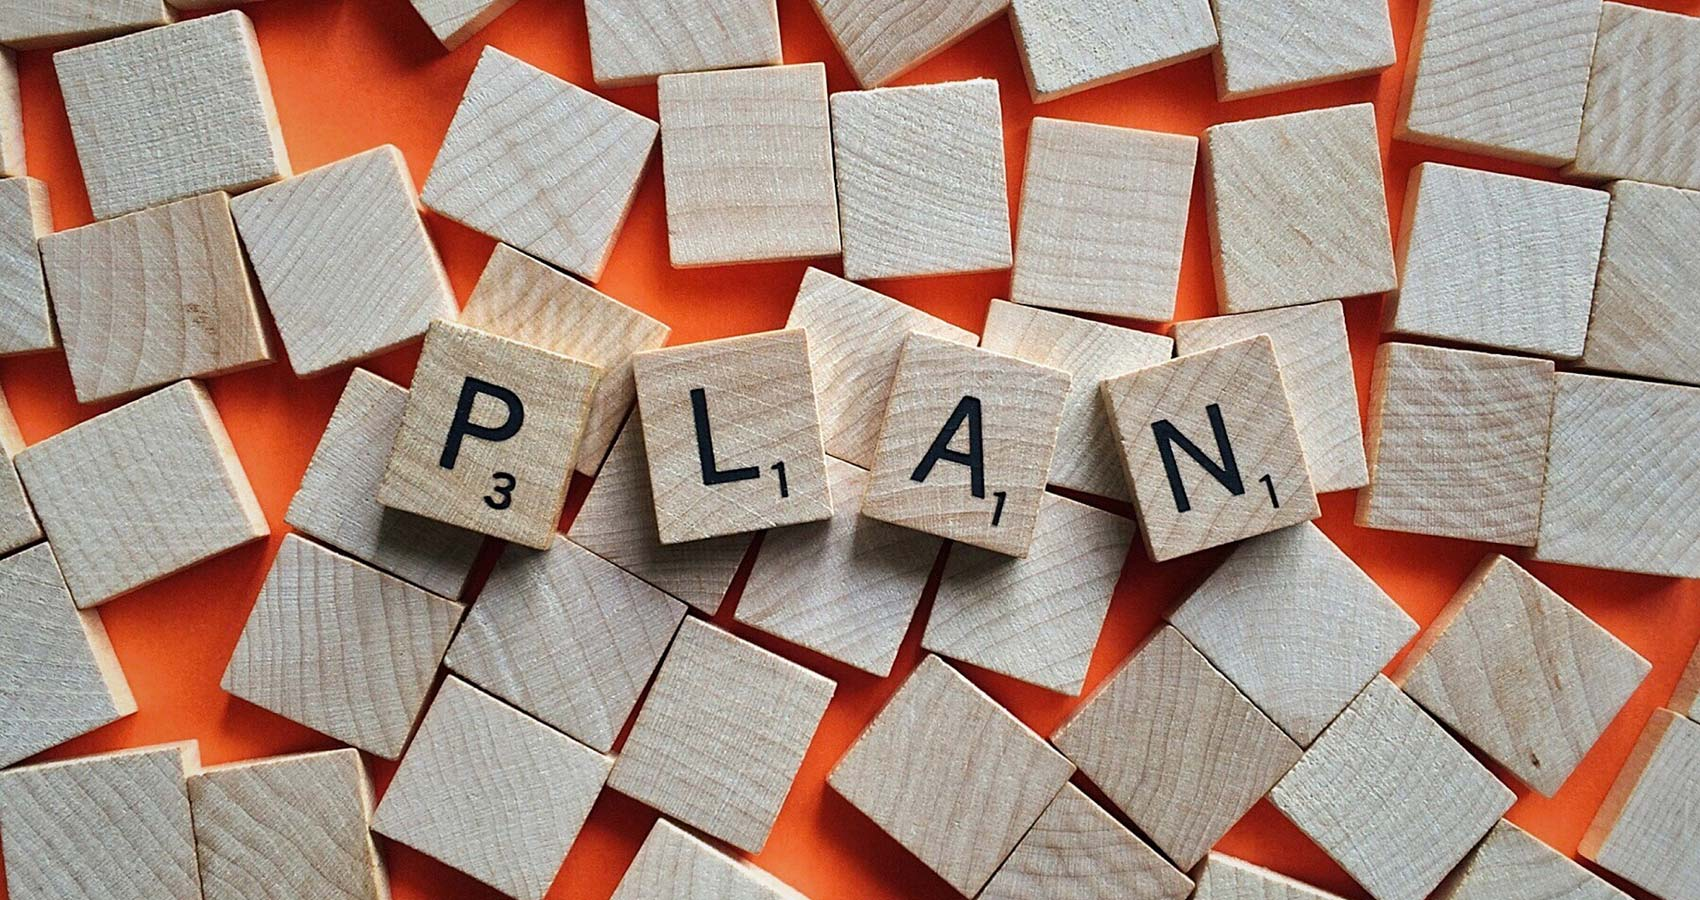 Plan A, an essay by Katerina Tsasis at Spillwords.com